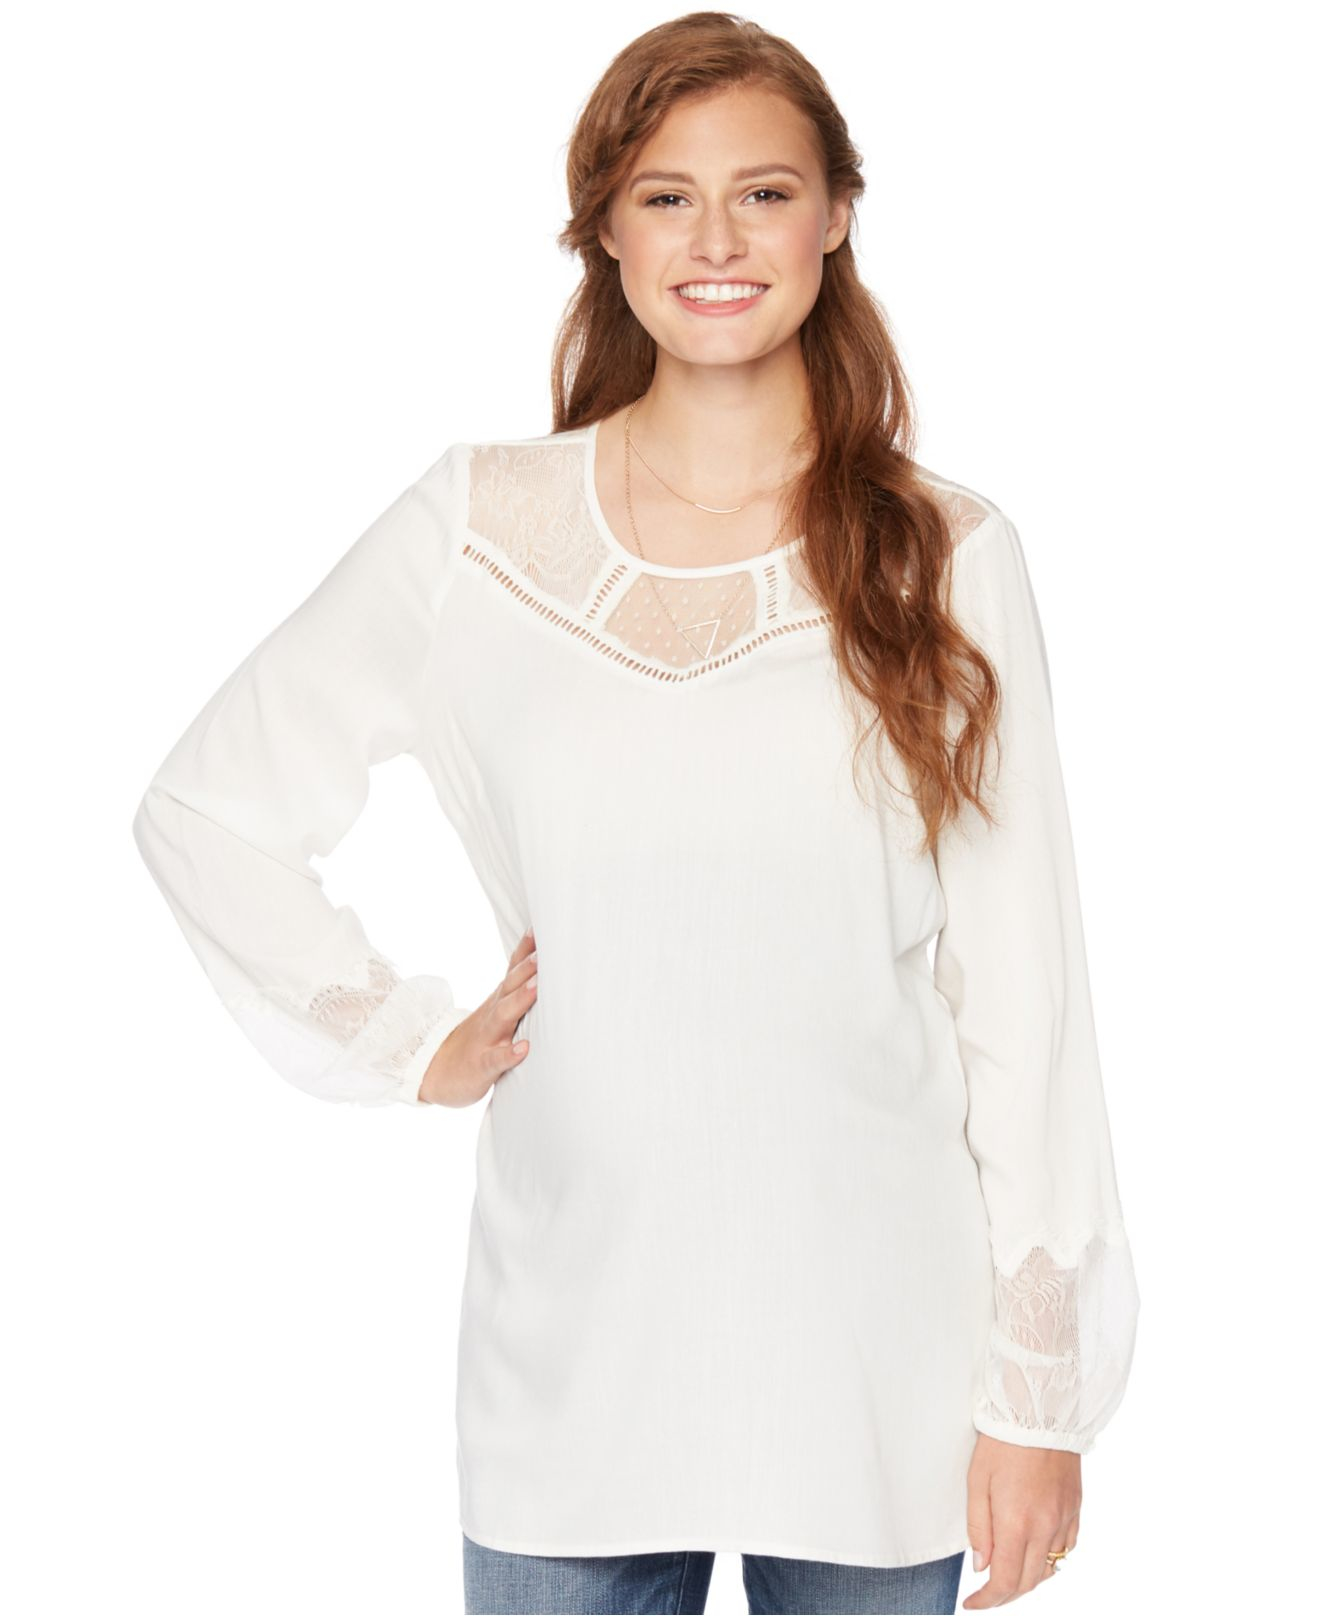 Asos Maternity Blouse With Lace Trim 63